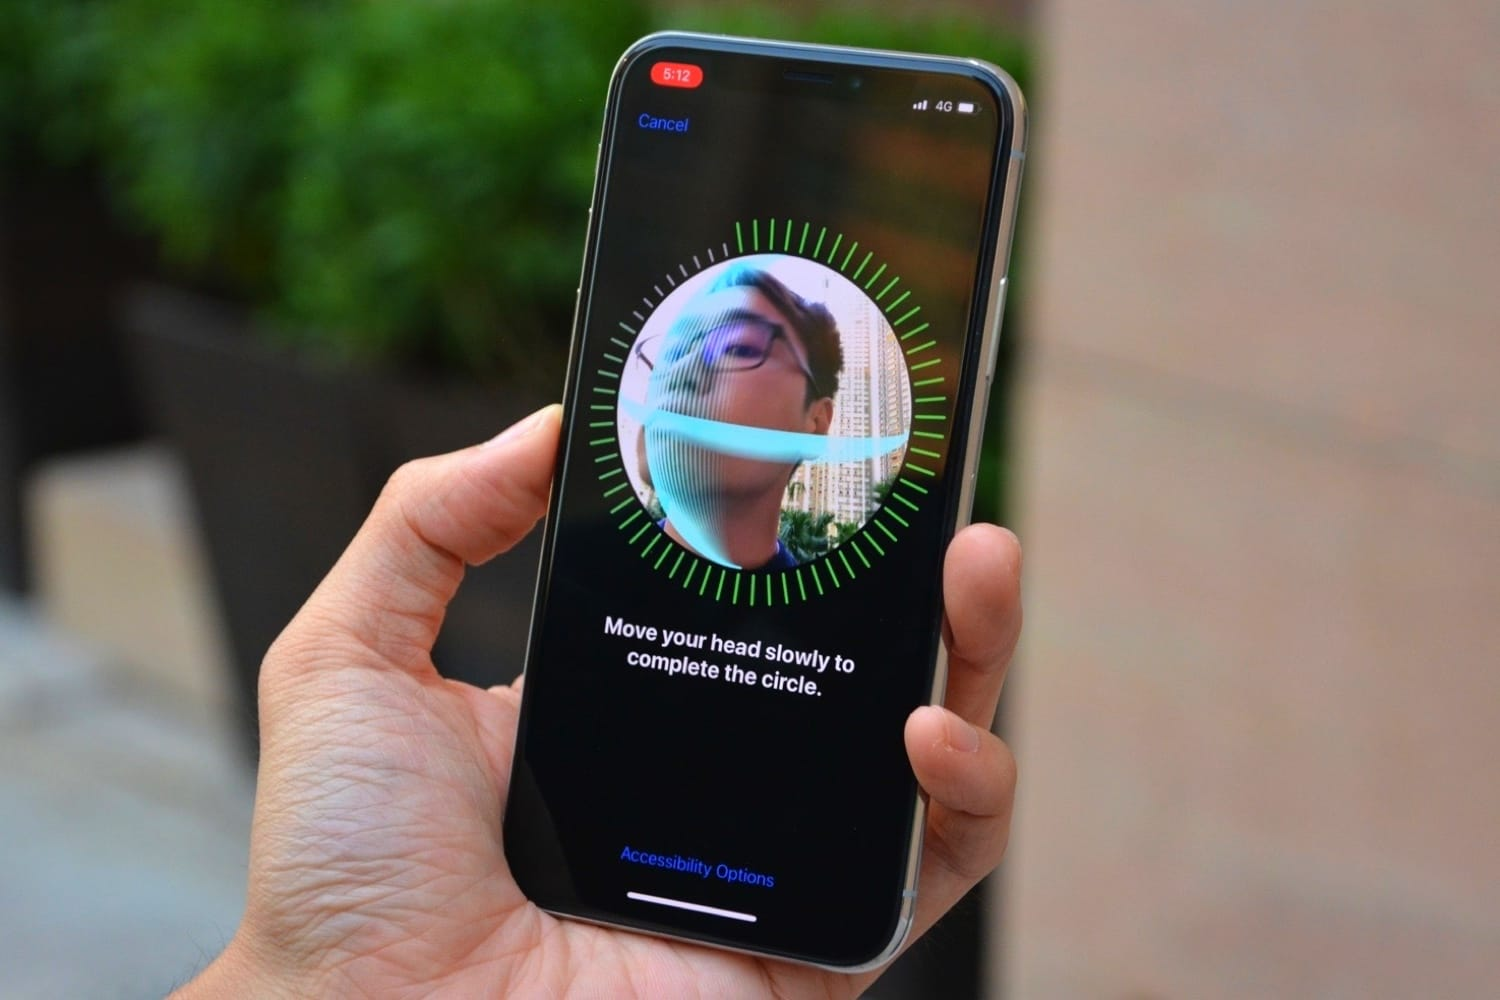 Apple may release an iPhone with Face ID and Touch ID